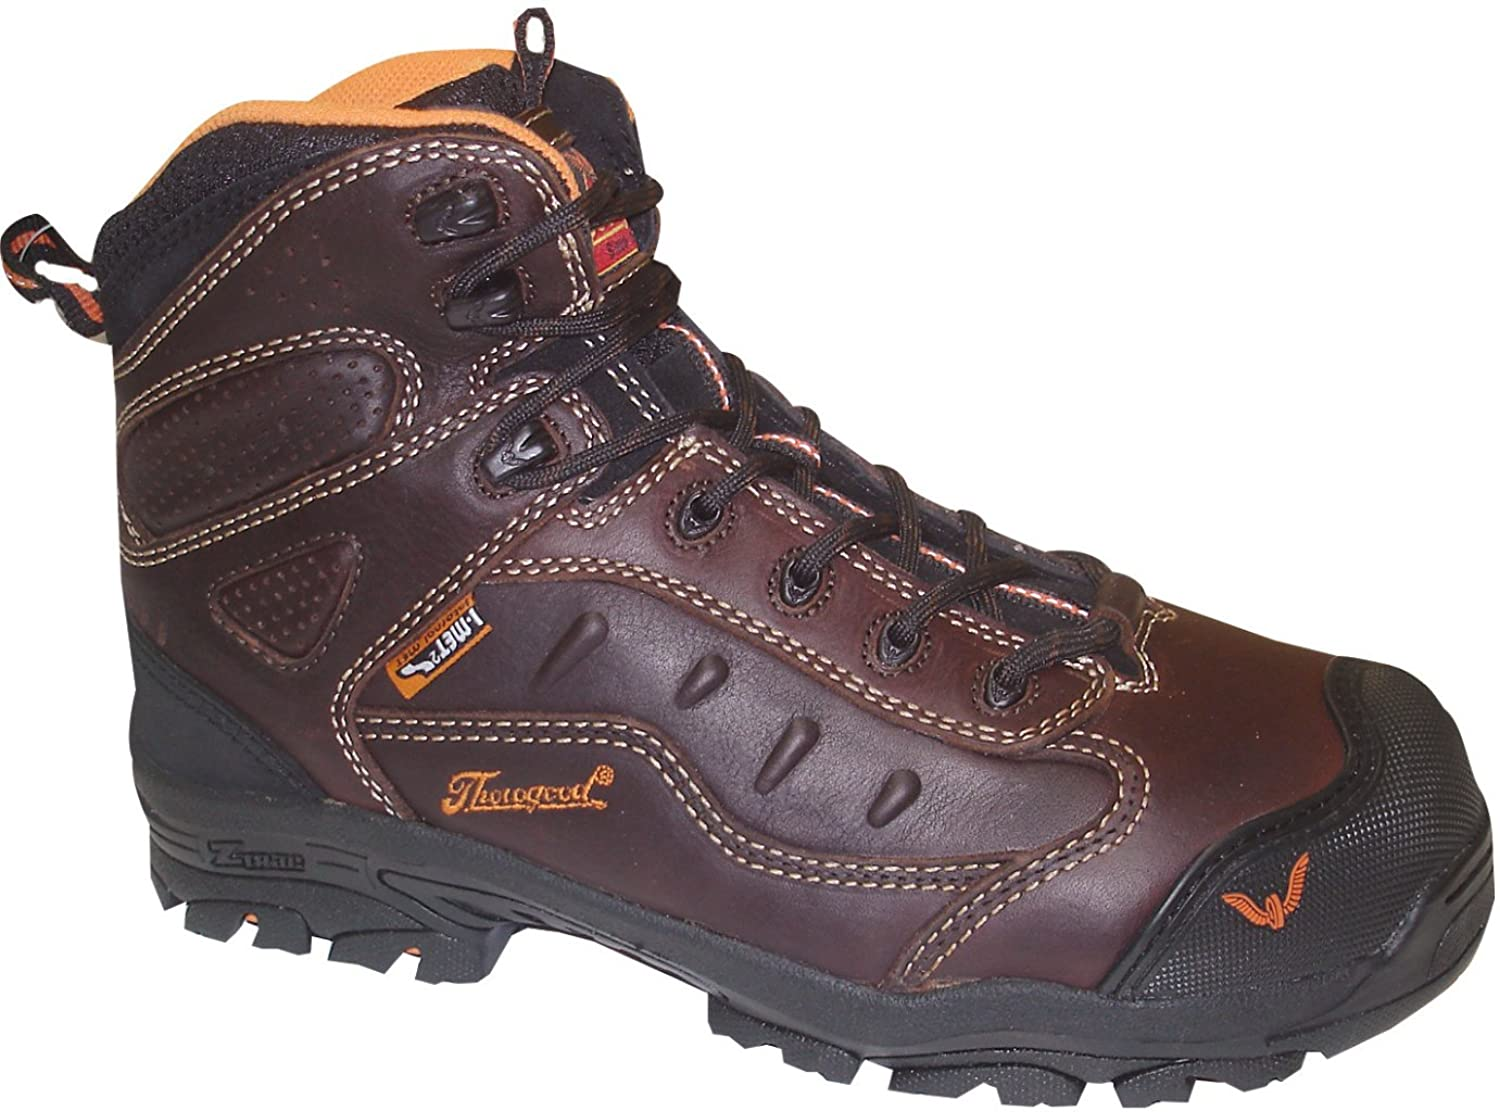 804-4043 Thorogood Men's Sport Z-TRAC Safety Boots - Brown